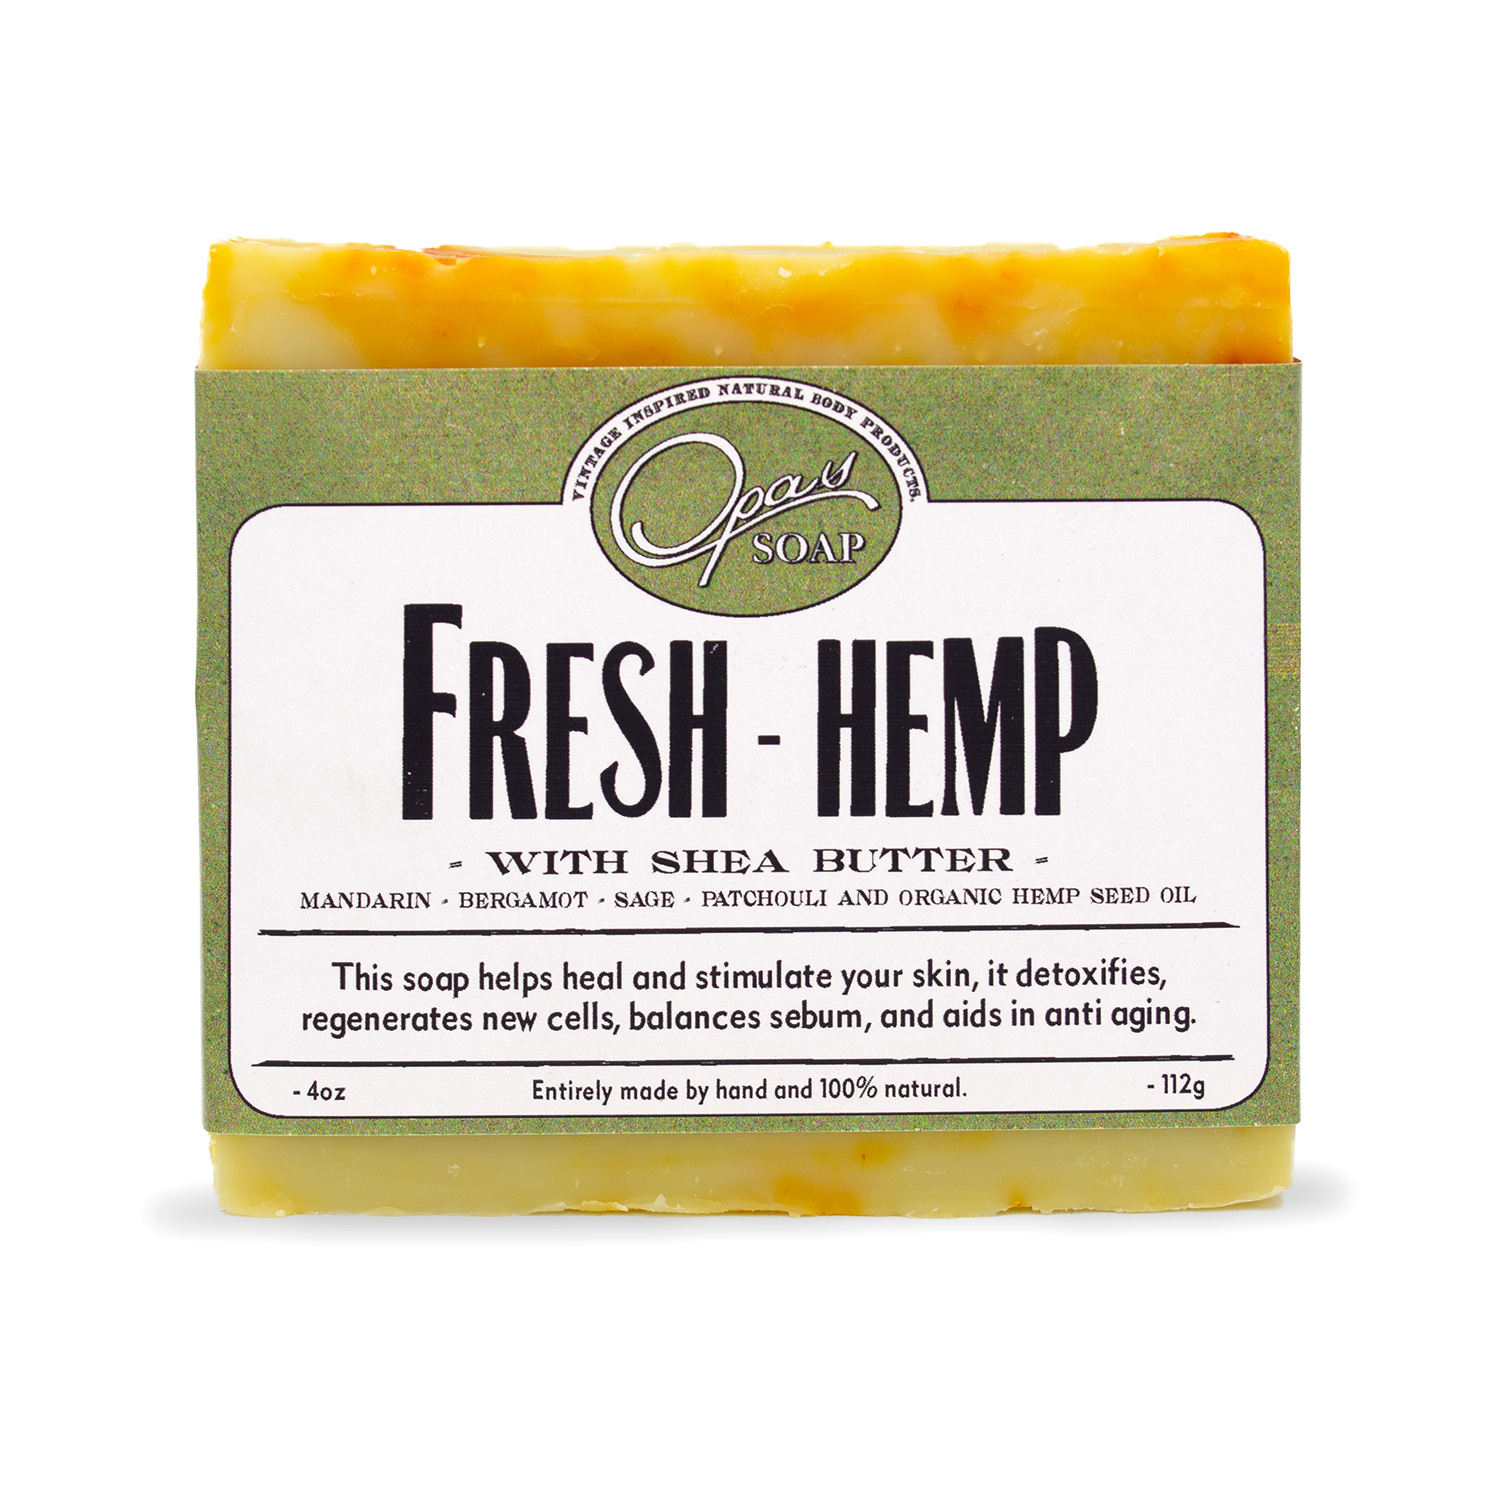 Fresh Hemp Soap